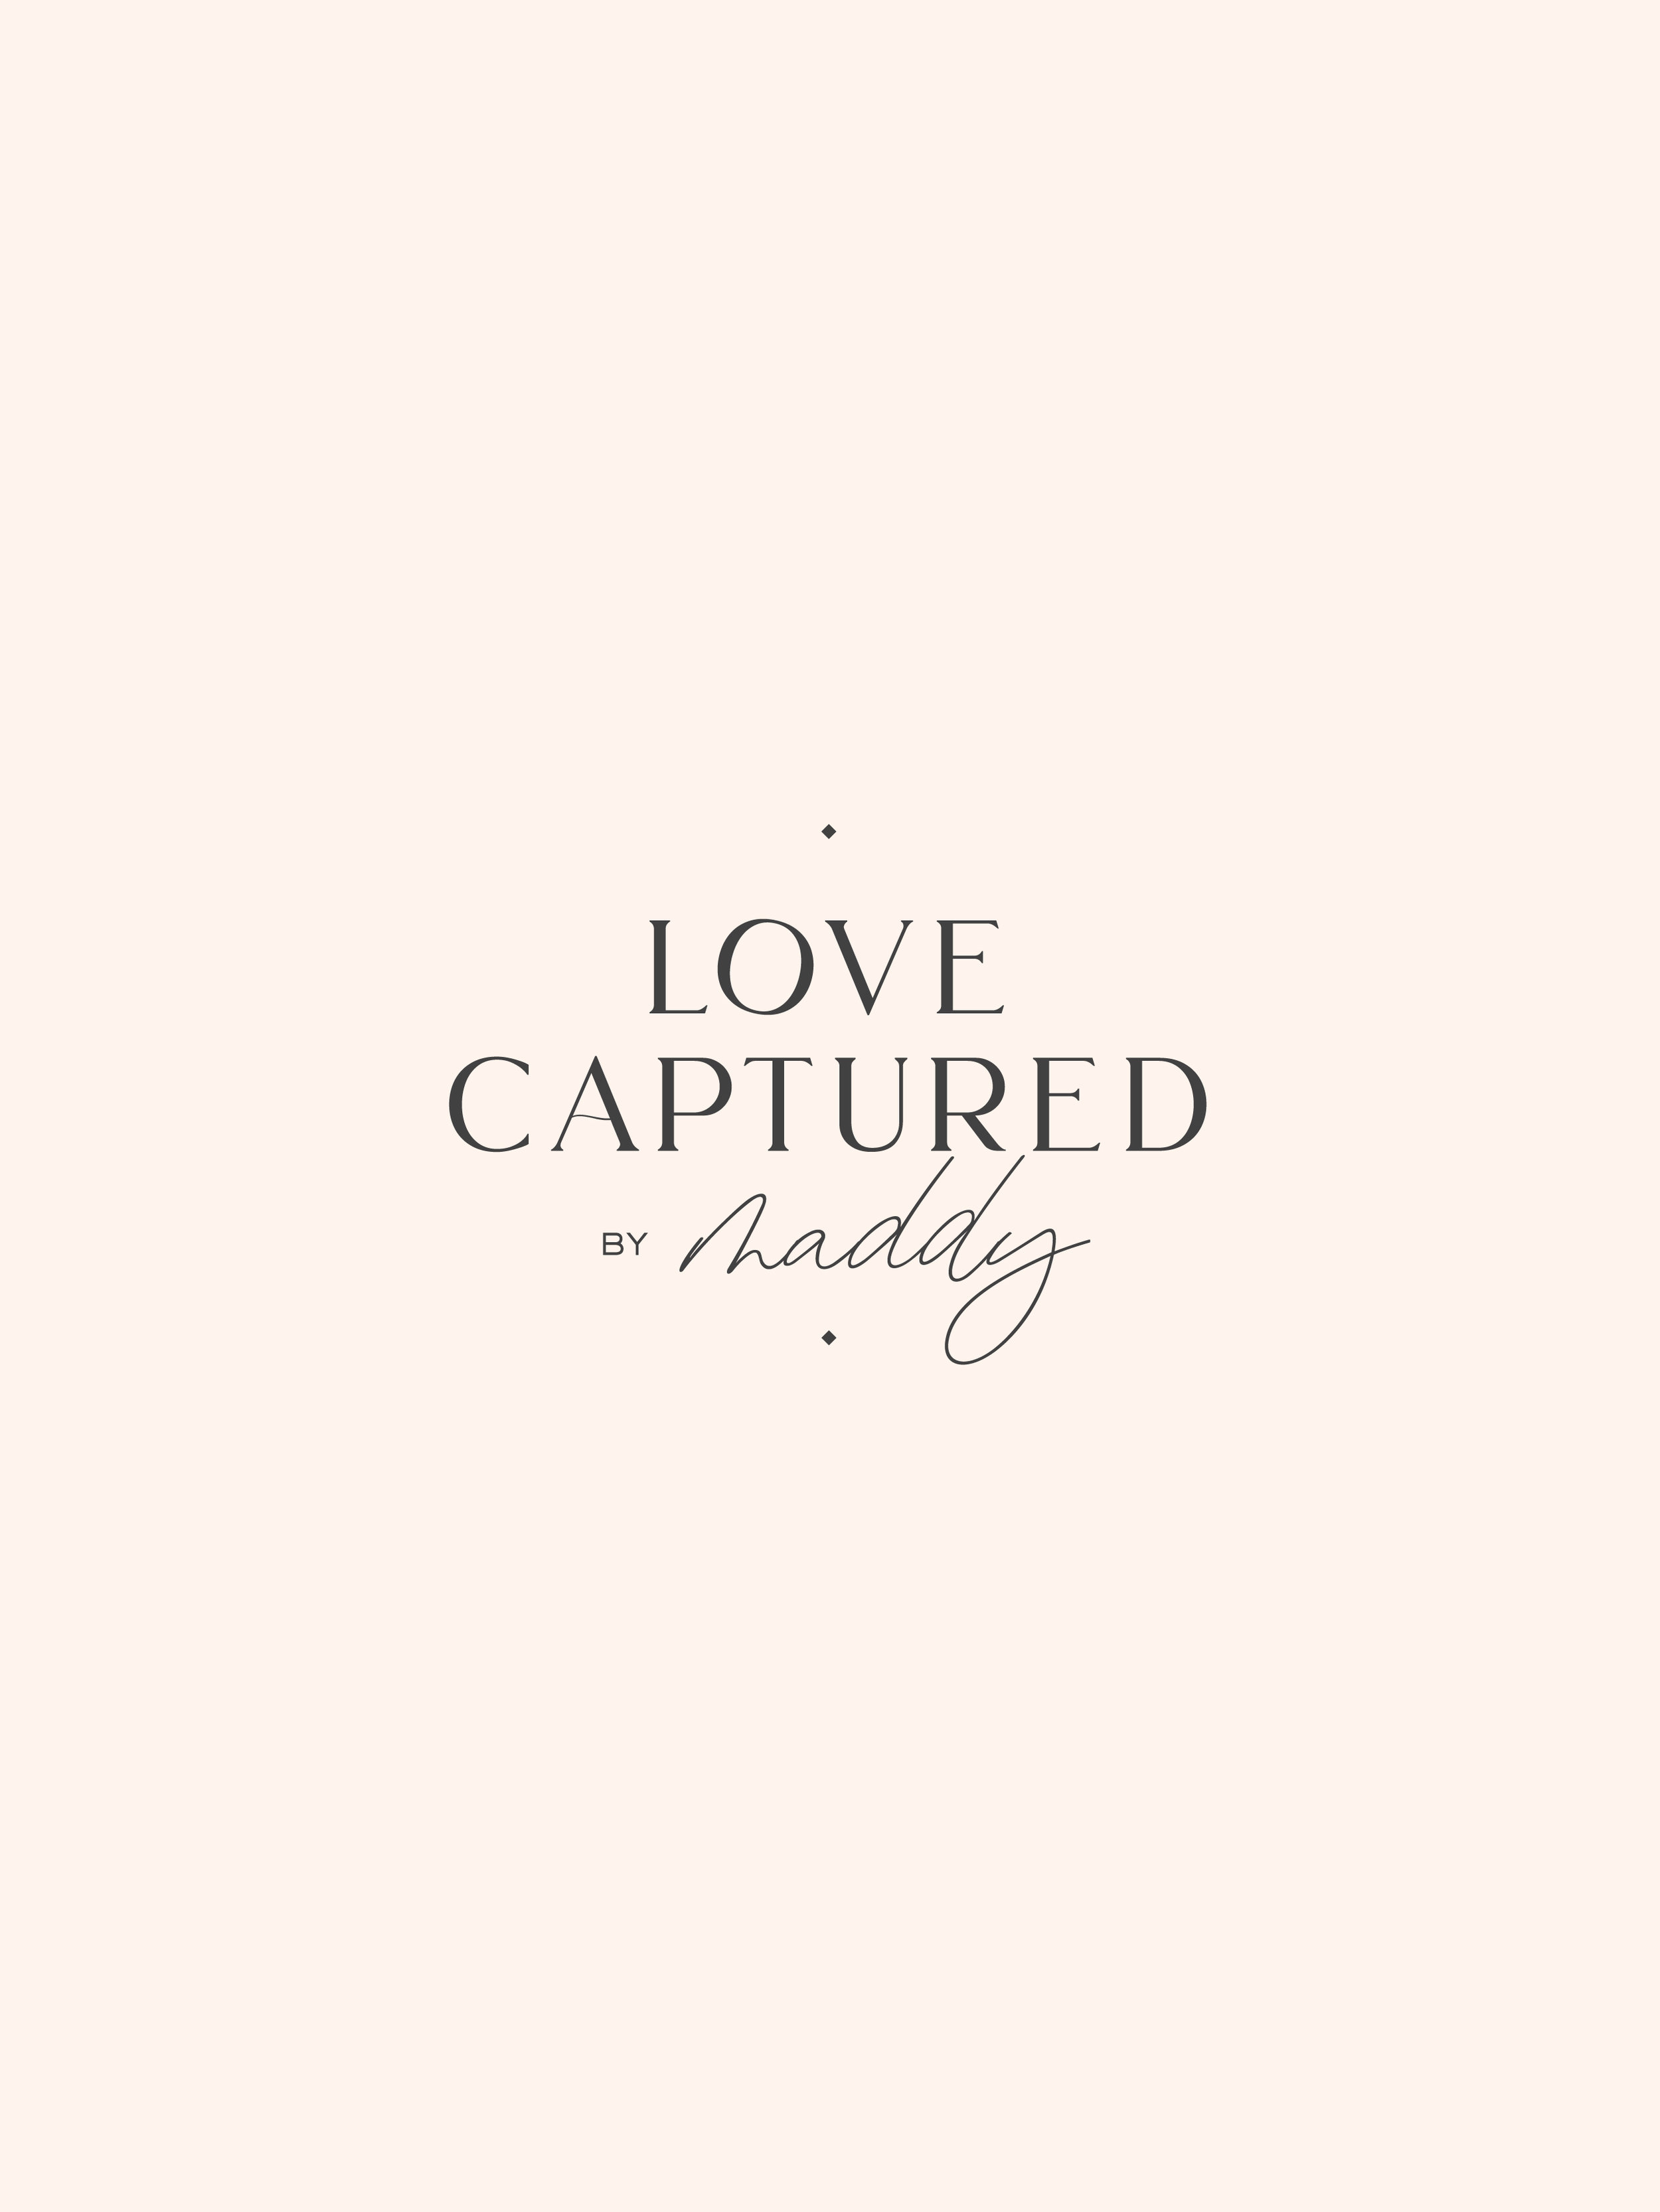 Love Captured by Maddy unused elements - by January Made Design